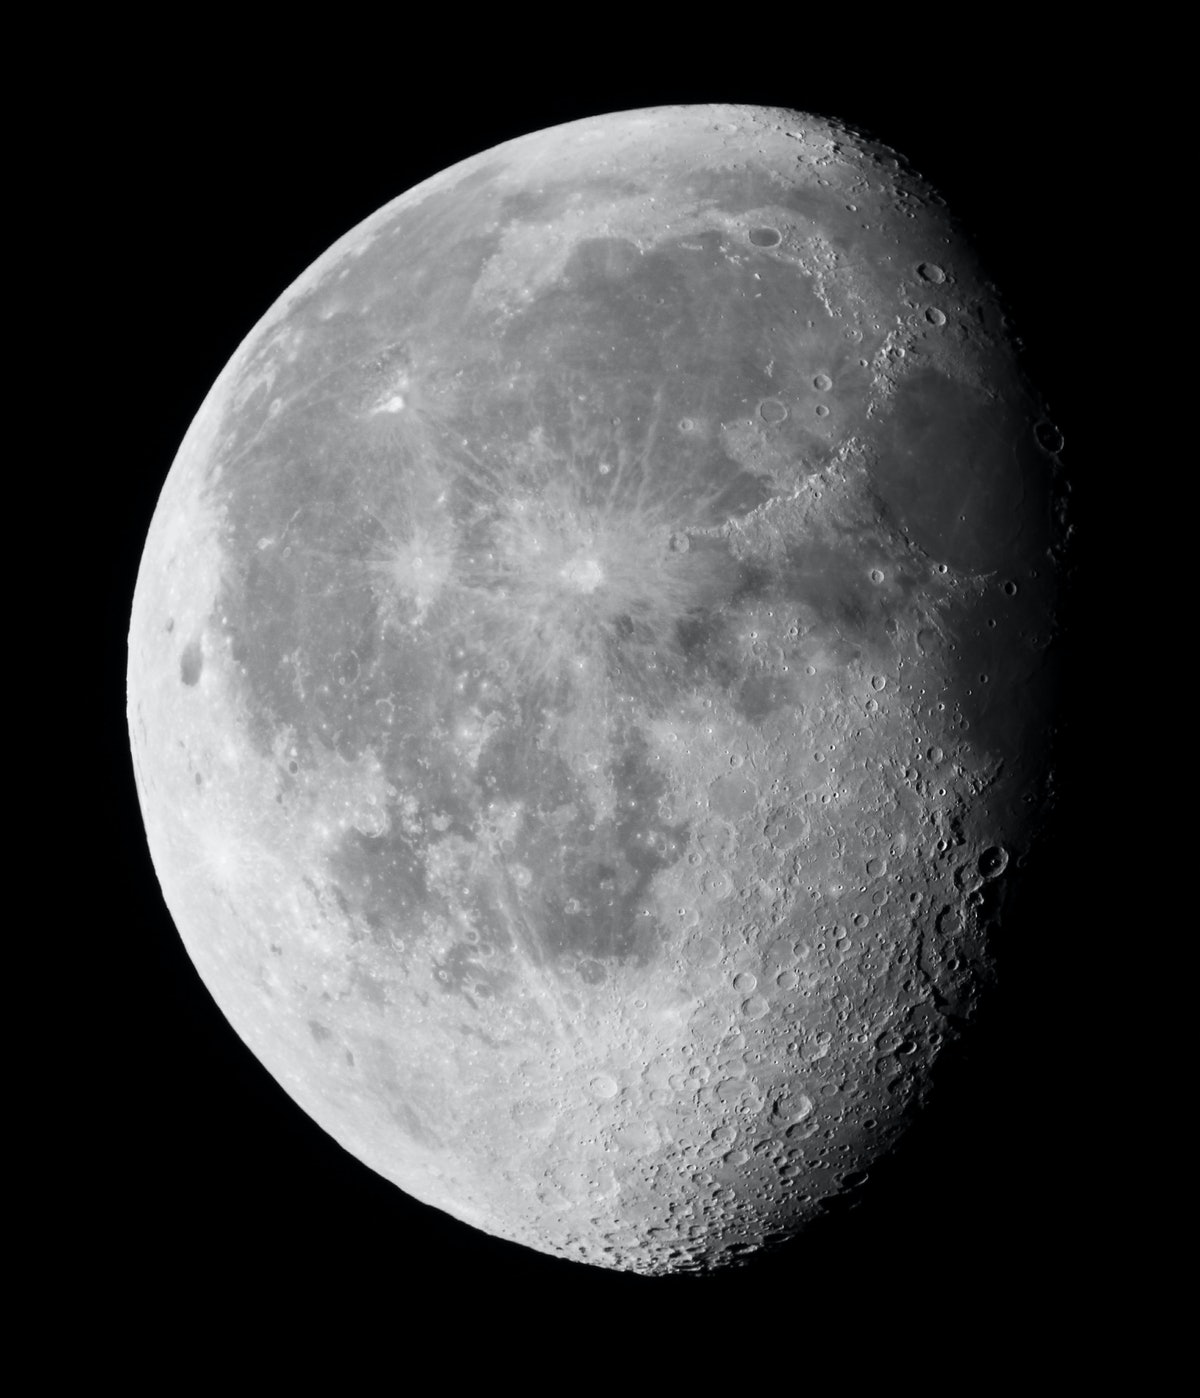 Waning gibbous moon, which is one of the eight moon phases.